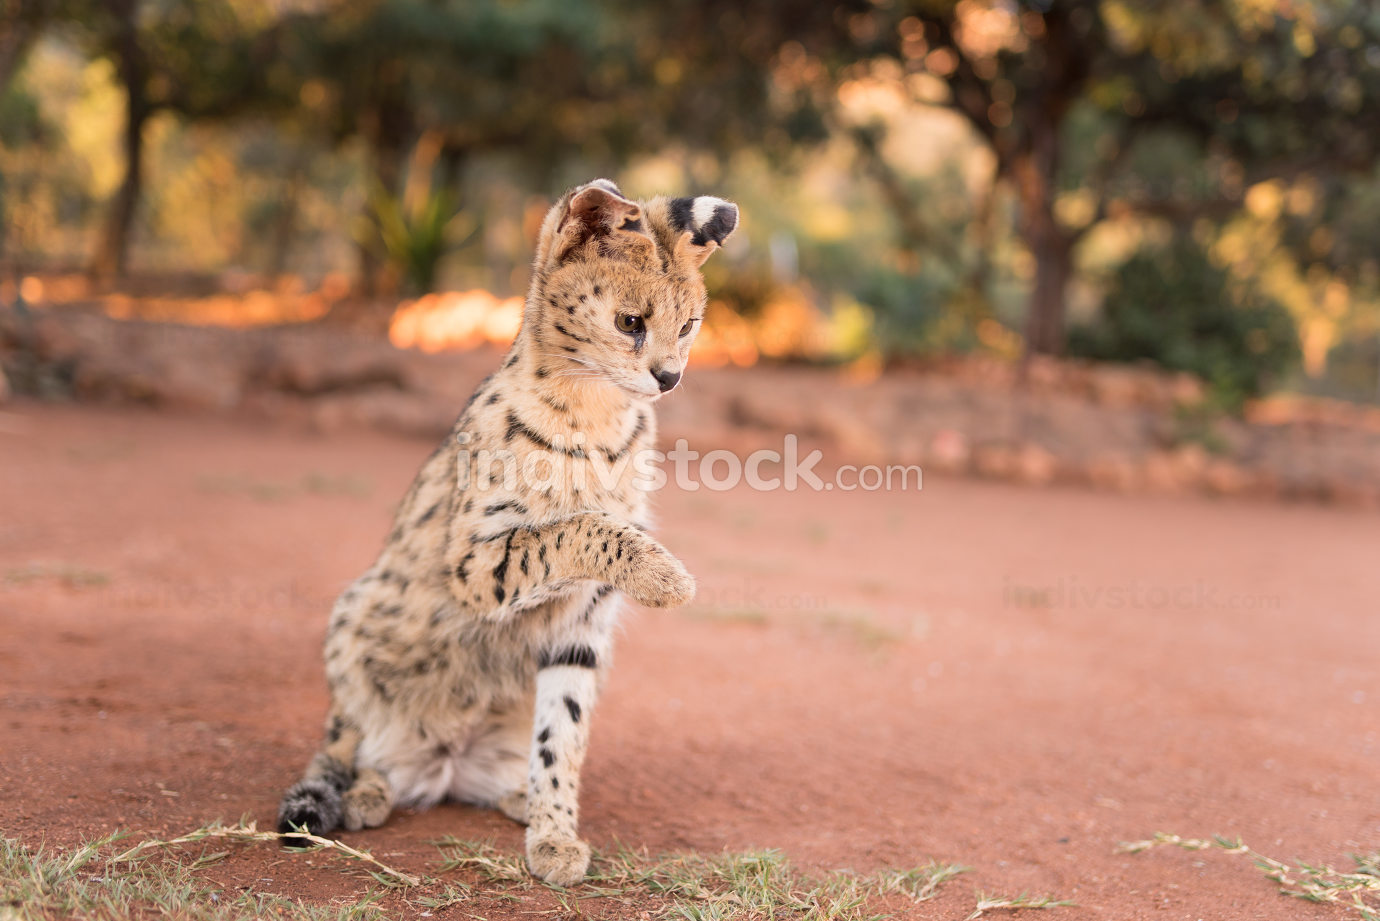 Serval cat in the wilderness